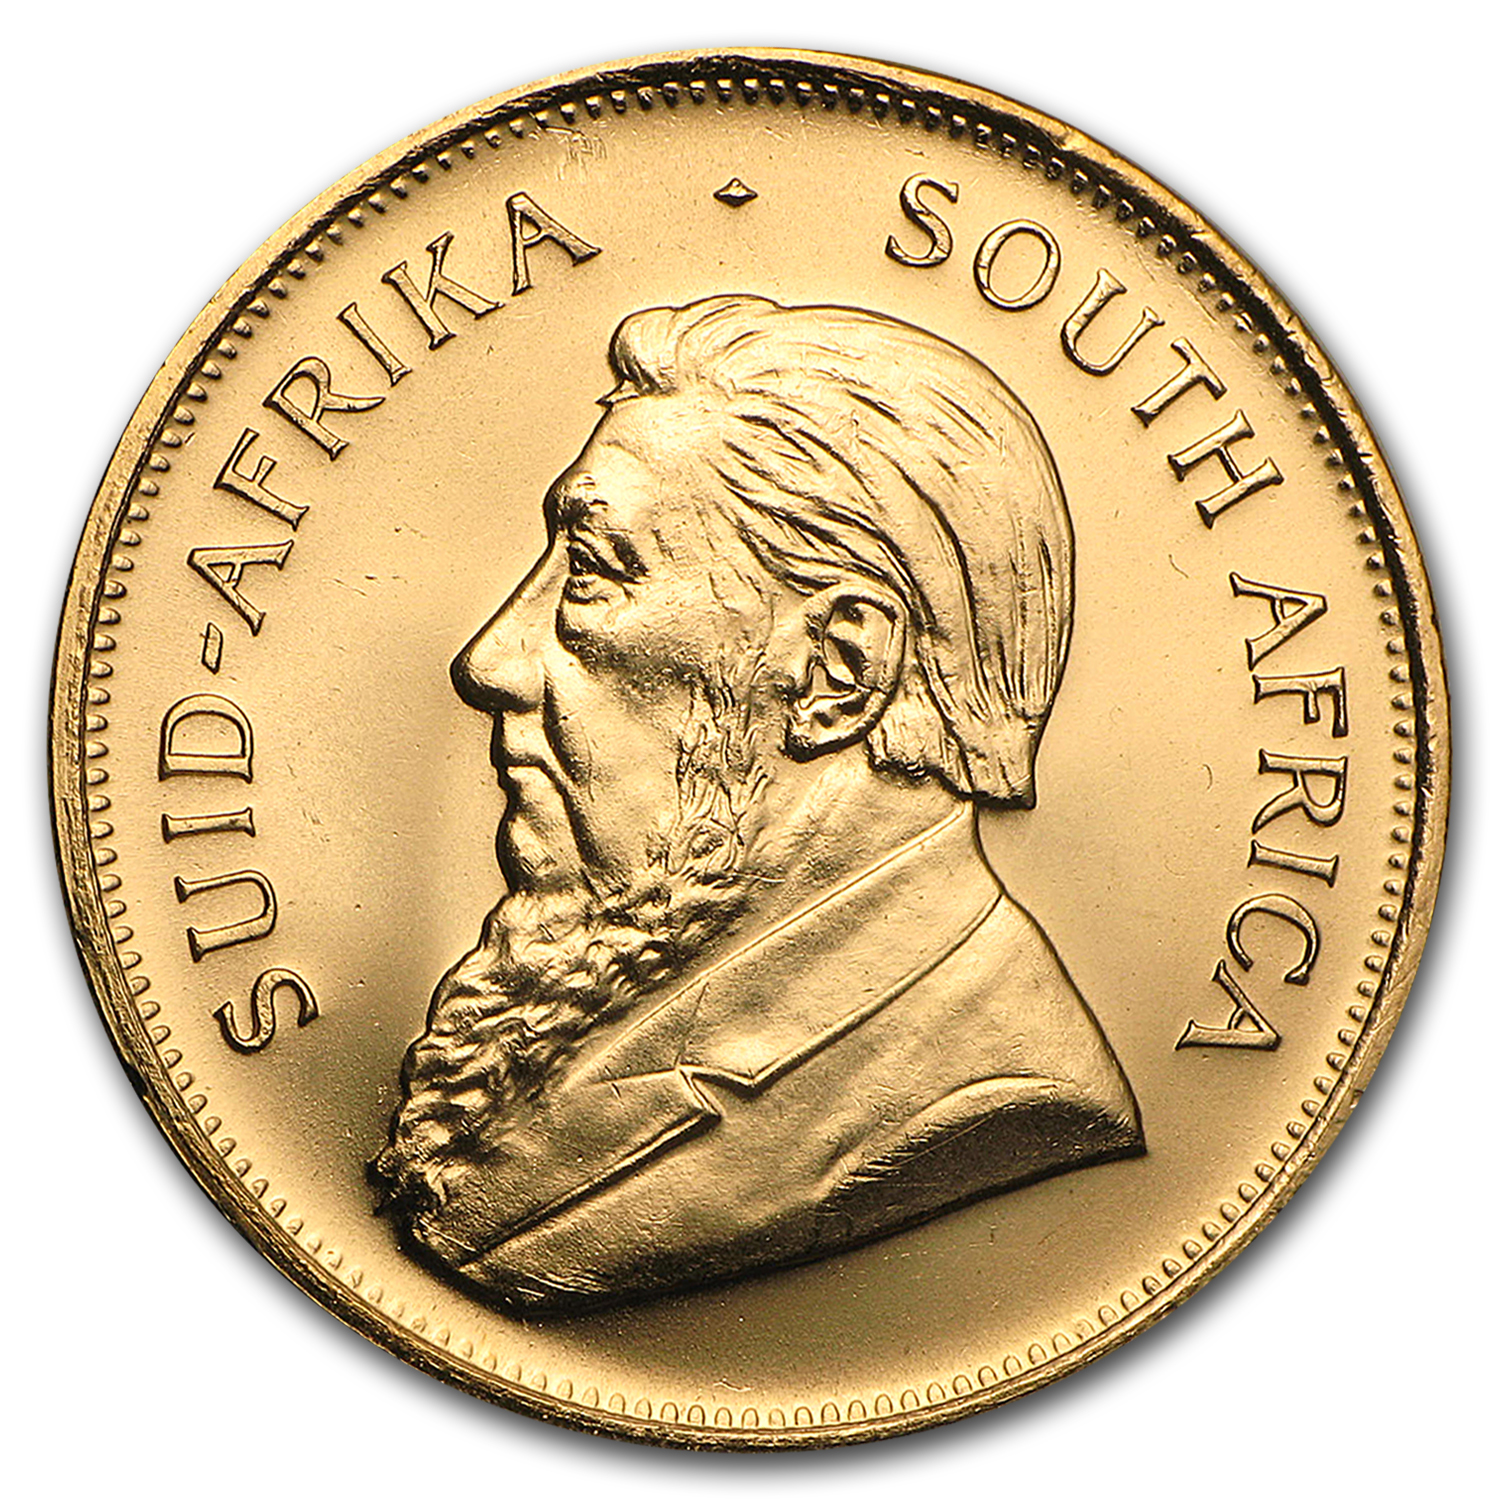 1986 South Africa 1 oz Gold Krugerrand